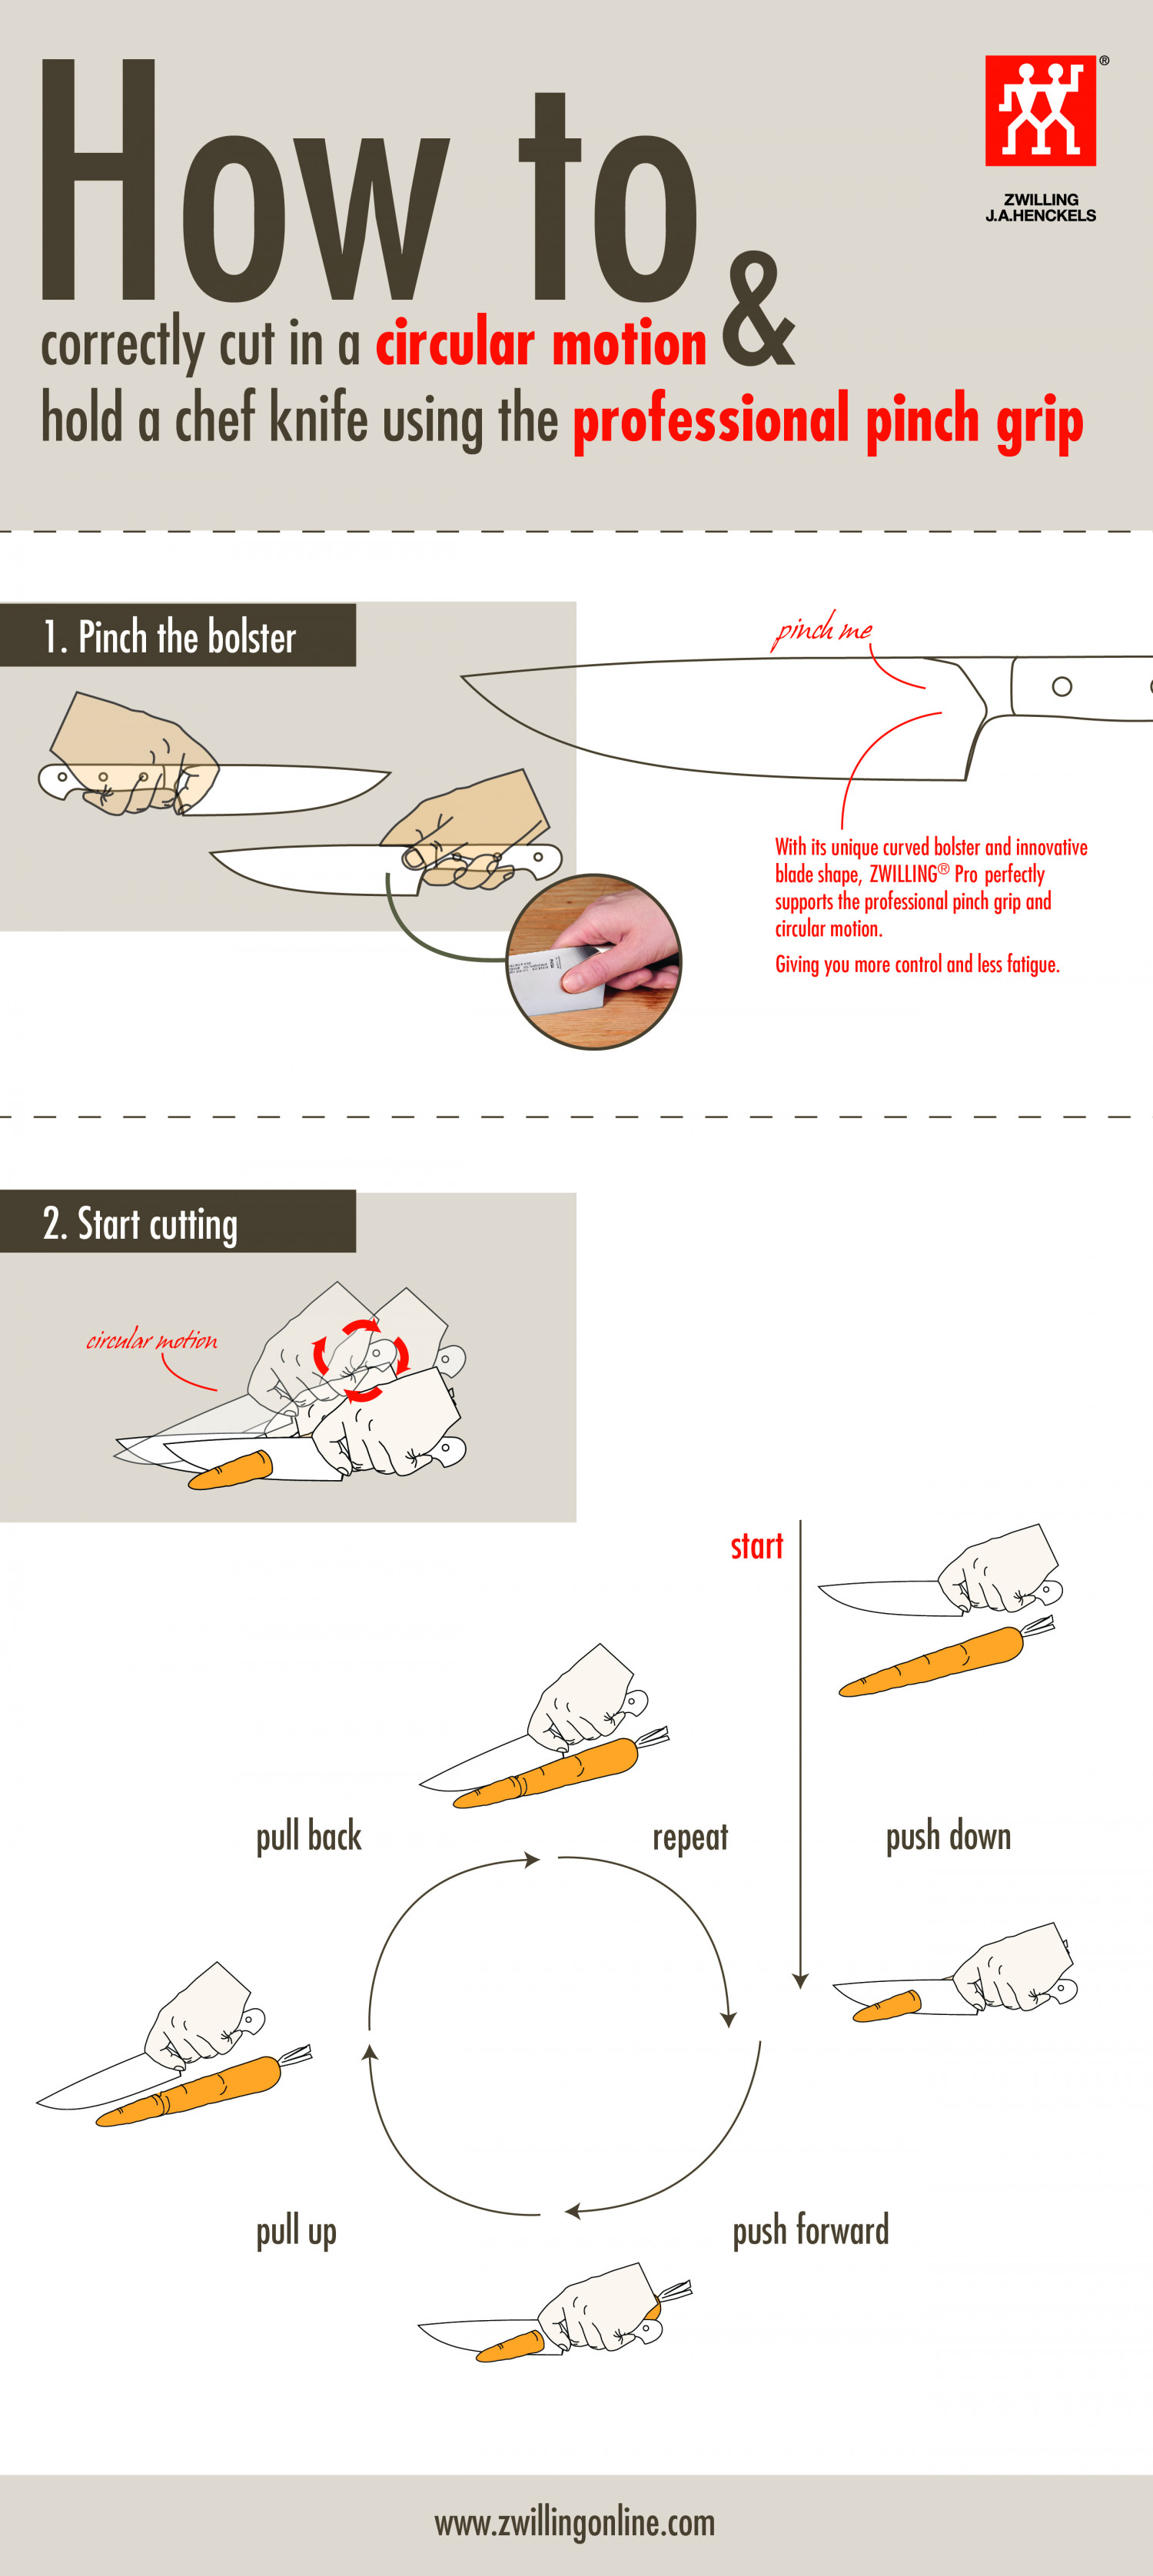 How to correctly cut in the circular motion and hold a knife using the professional pinch grip Infographic